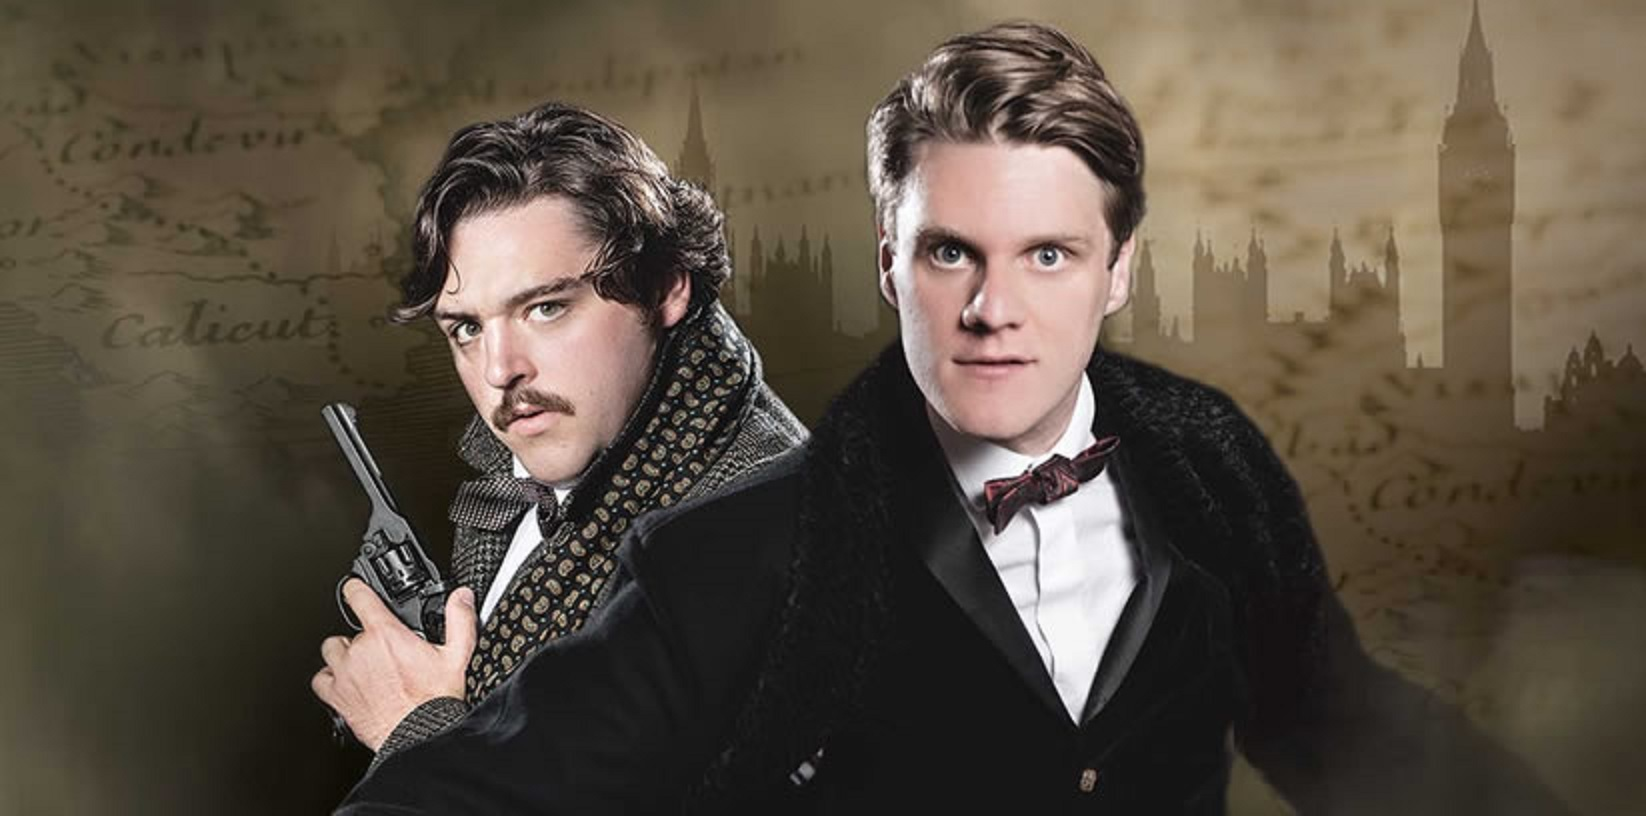 THRILLING: A Holmes adventure at Malvern Theatres